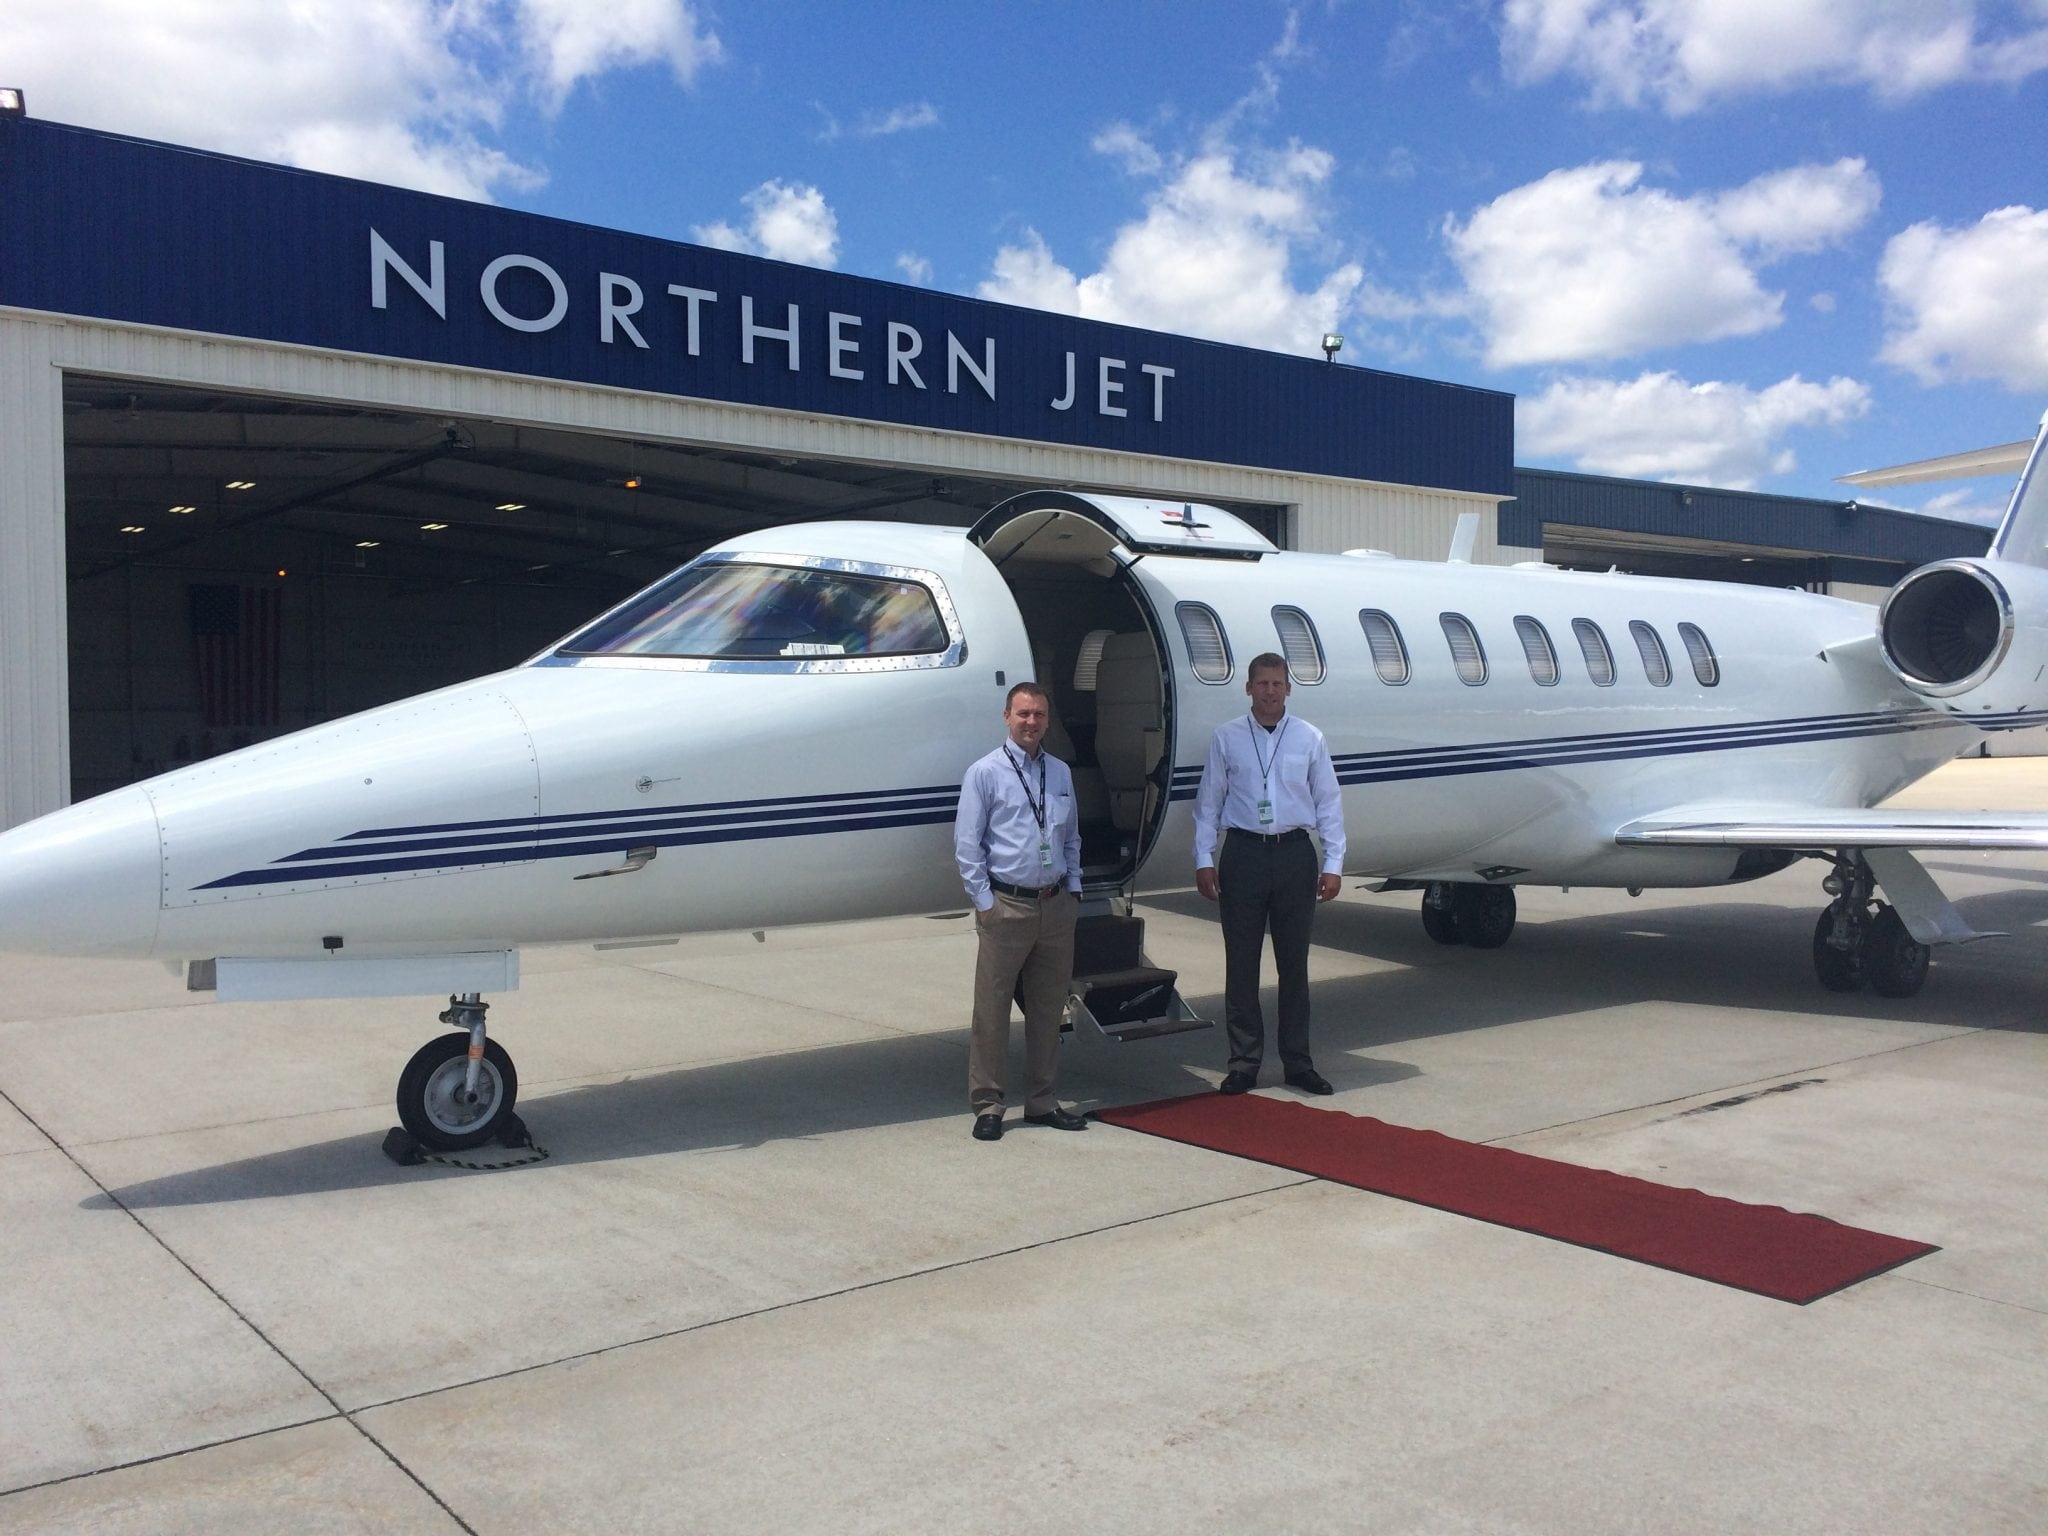 Pilots Steve Edmondson, left, and Andy Heemstra pose in front of the Bombardier Learjet 45XR they flew to establish the world record for a flight between Grand Rapids and Naples, Florida.